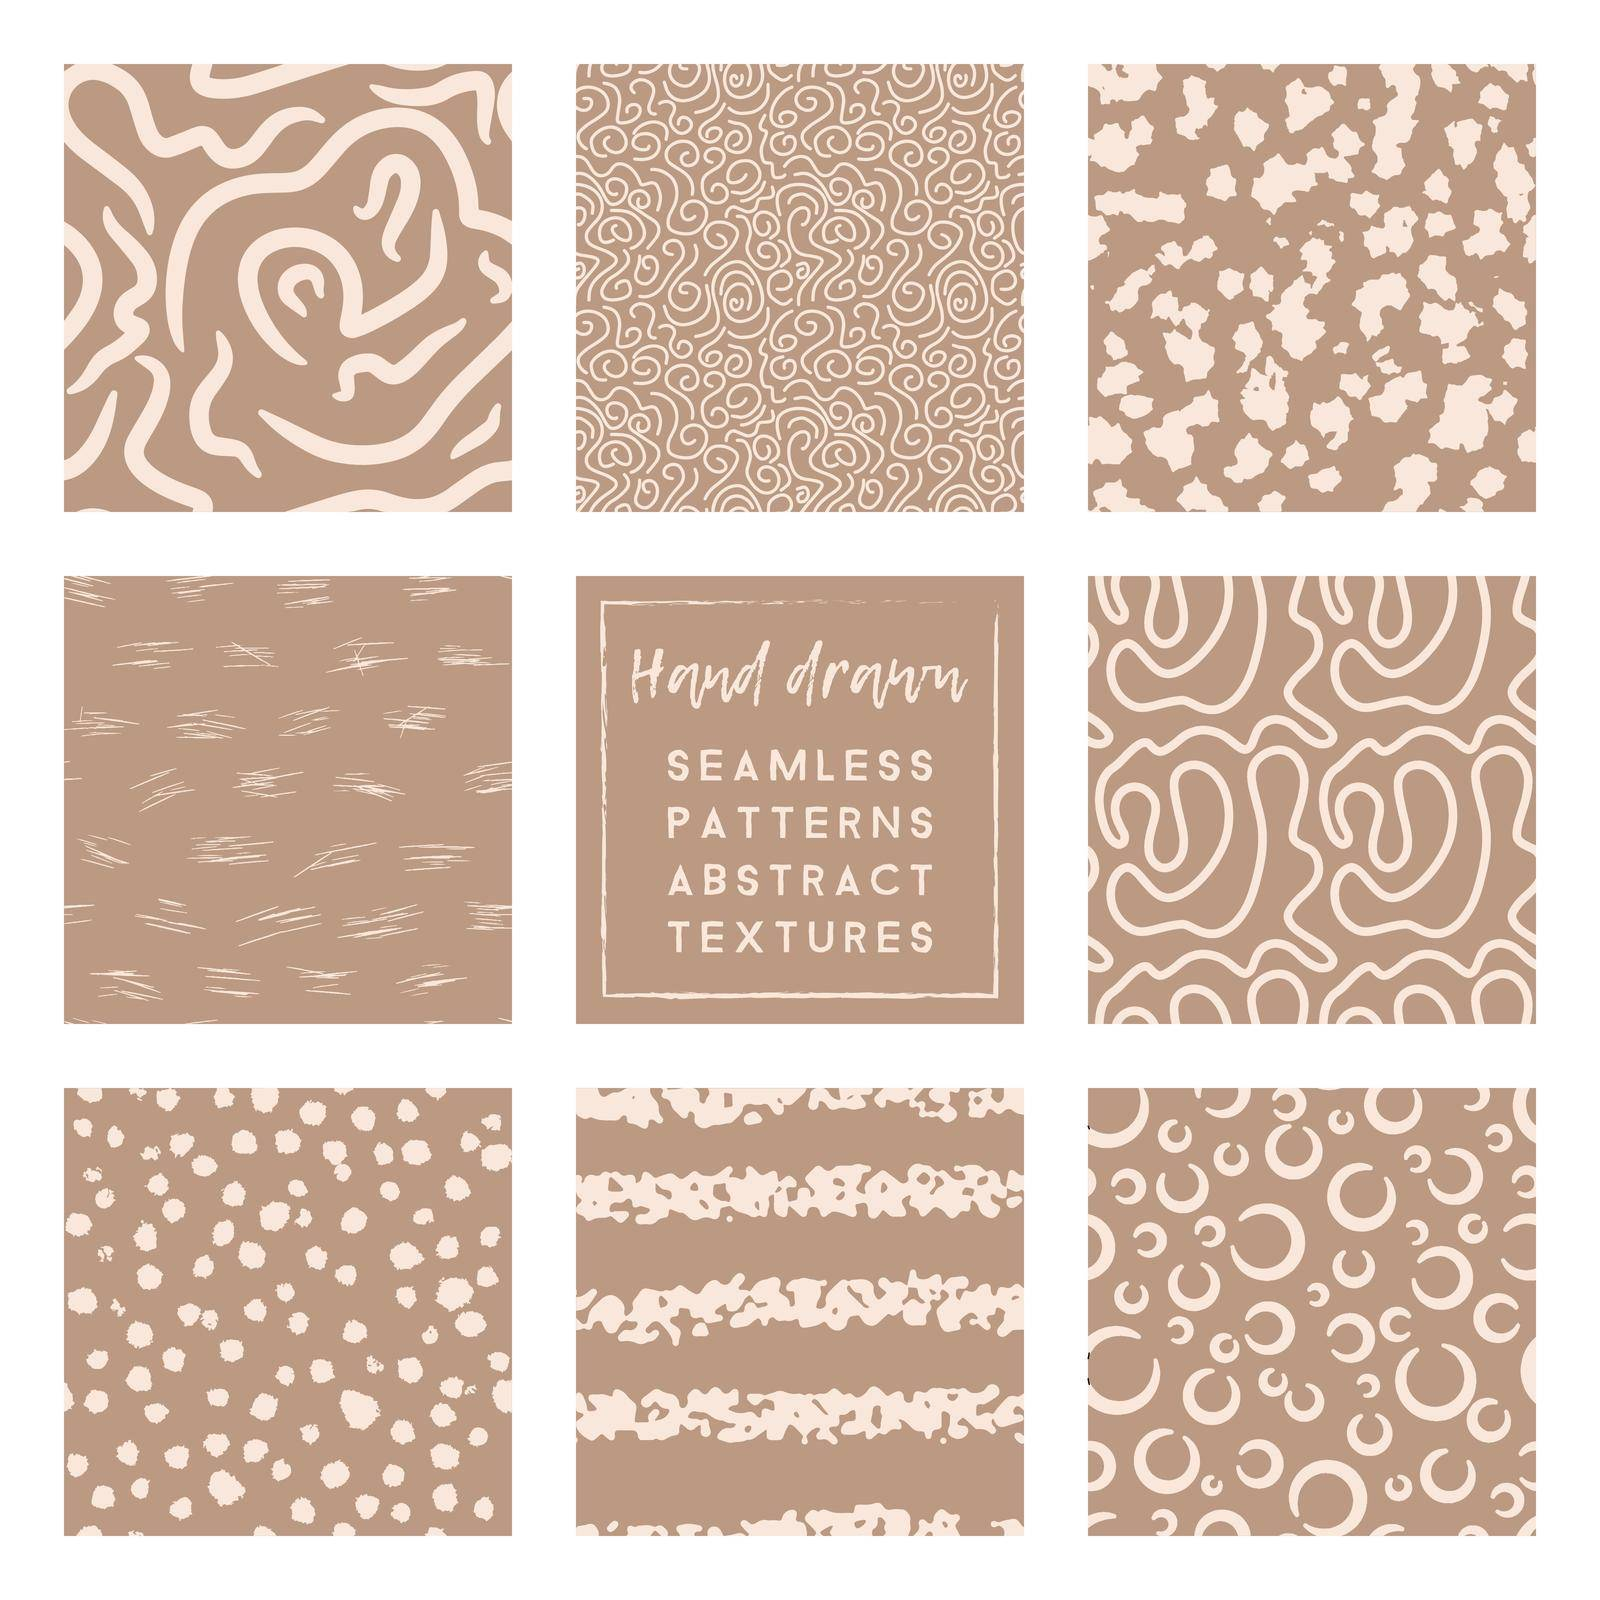 set of taupe and beige seamless patterns with hand drawn simple elements by MariaTem